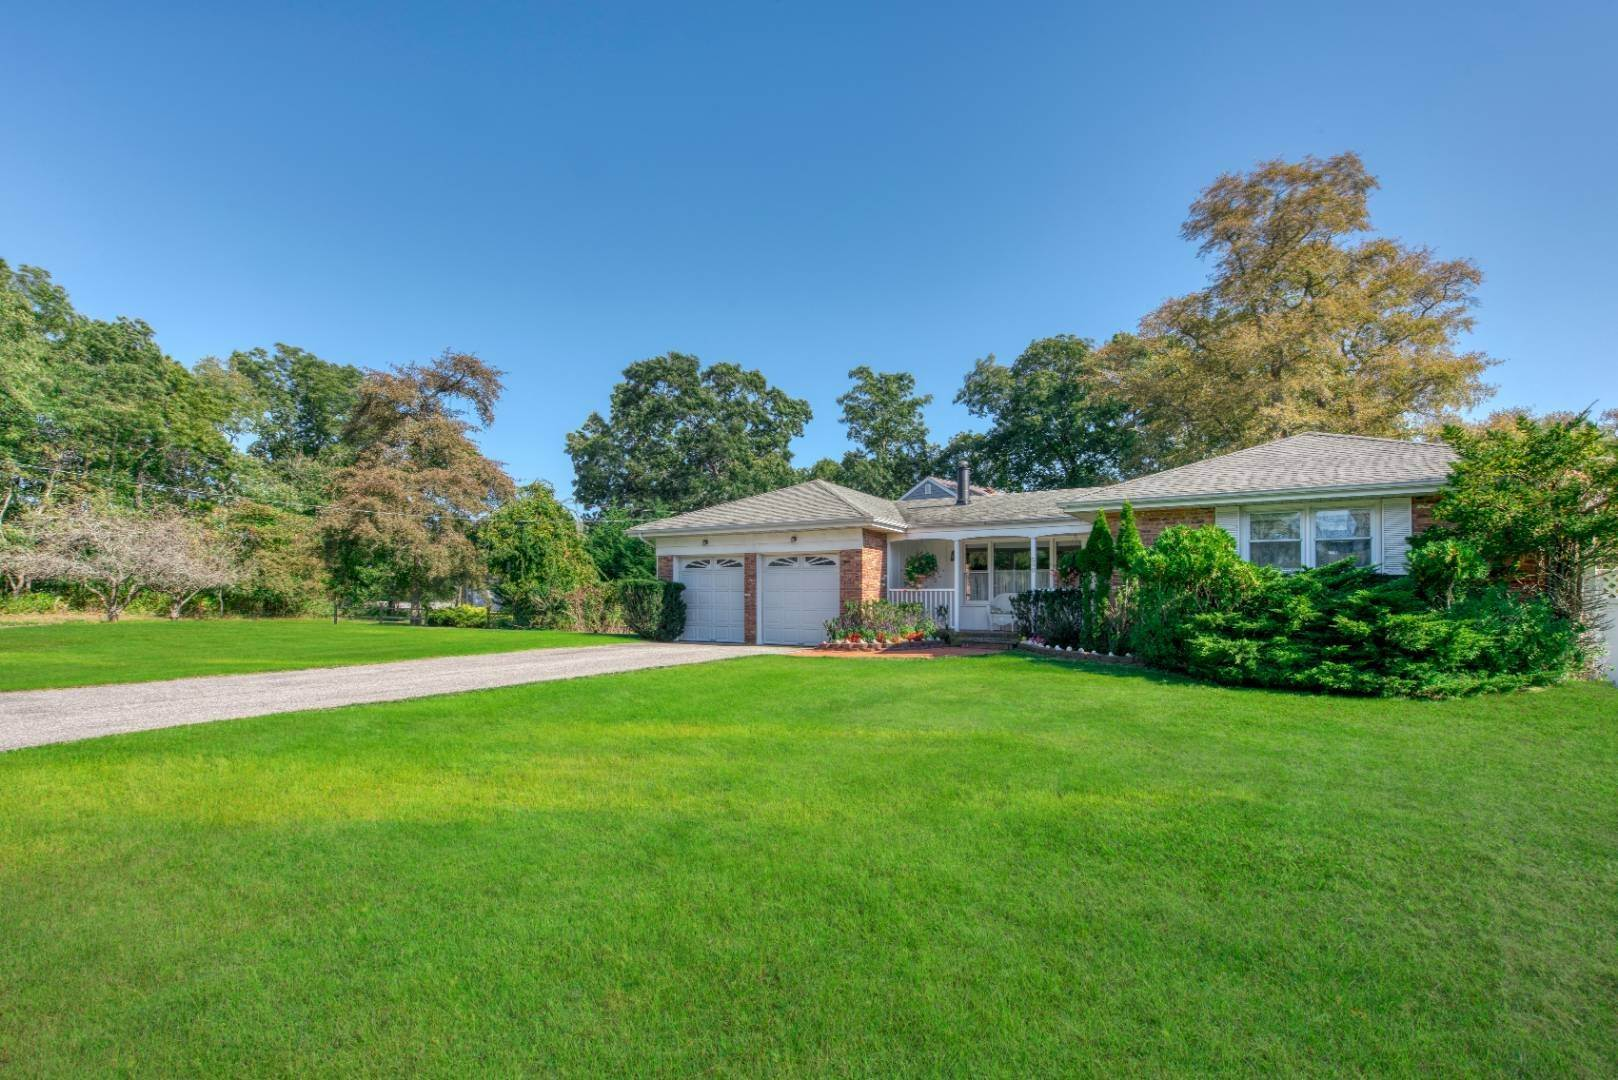 Single Family Home for Sale at Southold Waterfront With Dock, Direct Bay Access, Private Beach 590 Budds Pond Rd, Southold, NY 11971